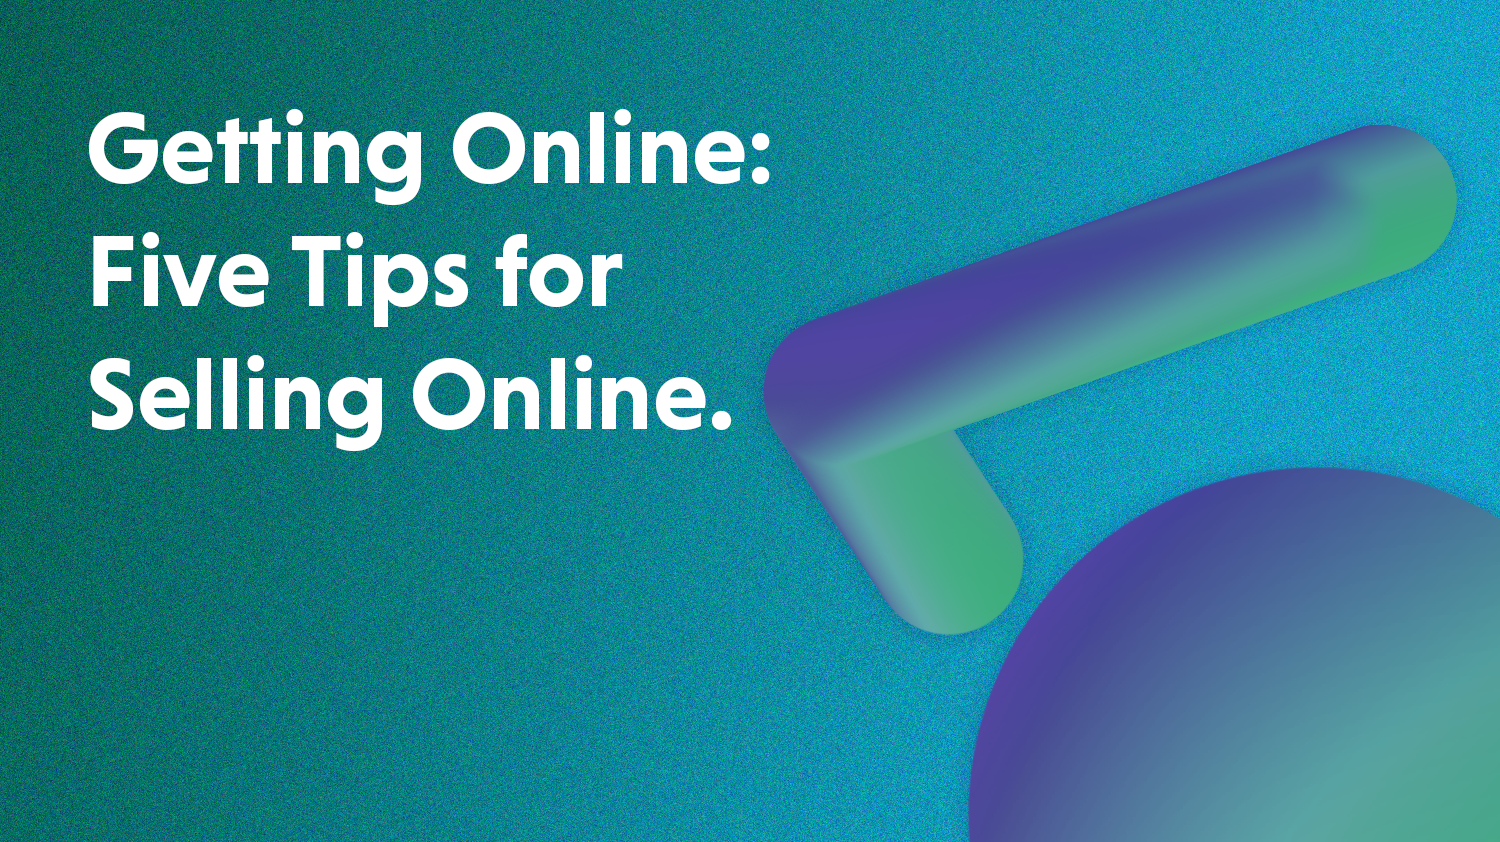 Getting Online: 5 Tips For Selling Online